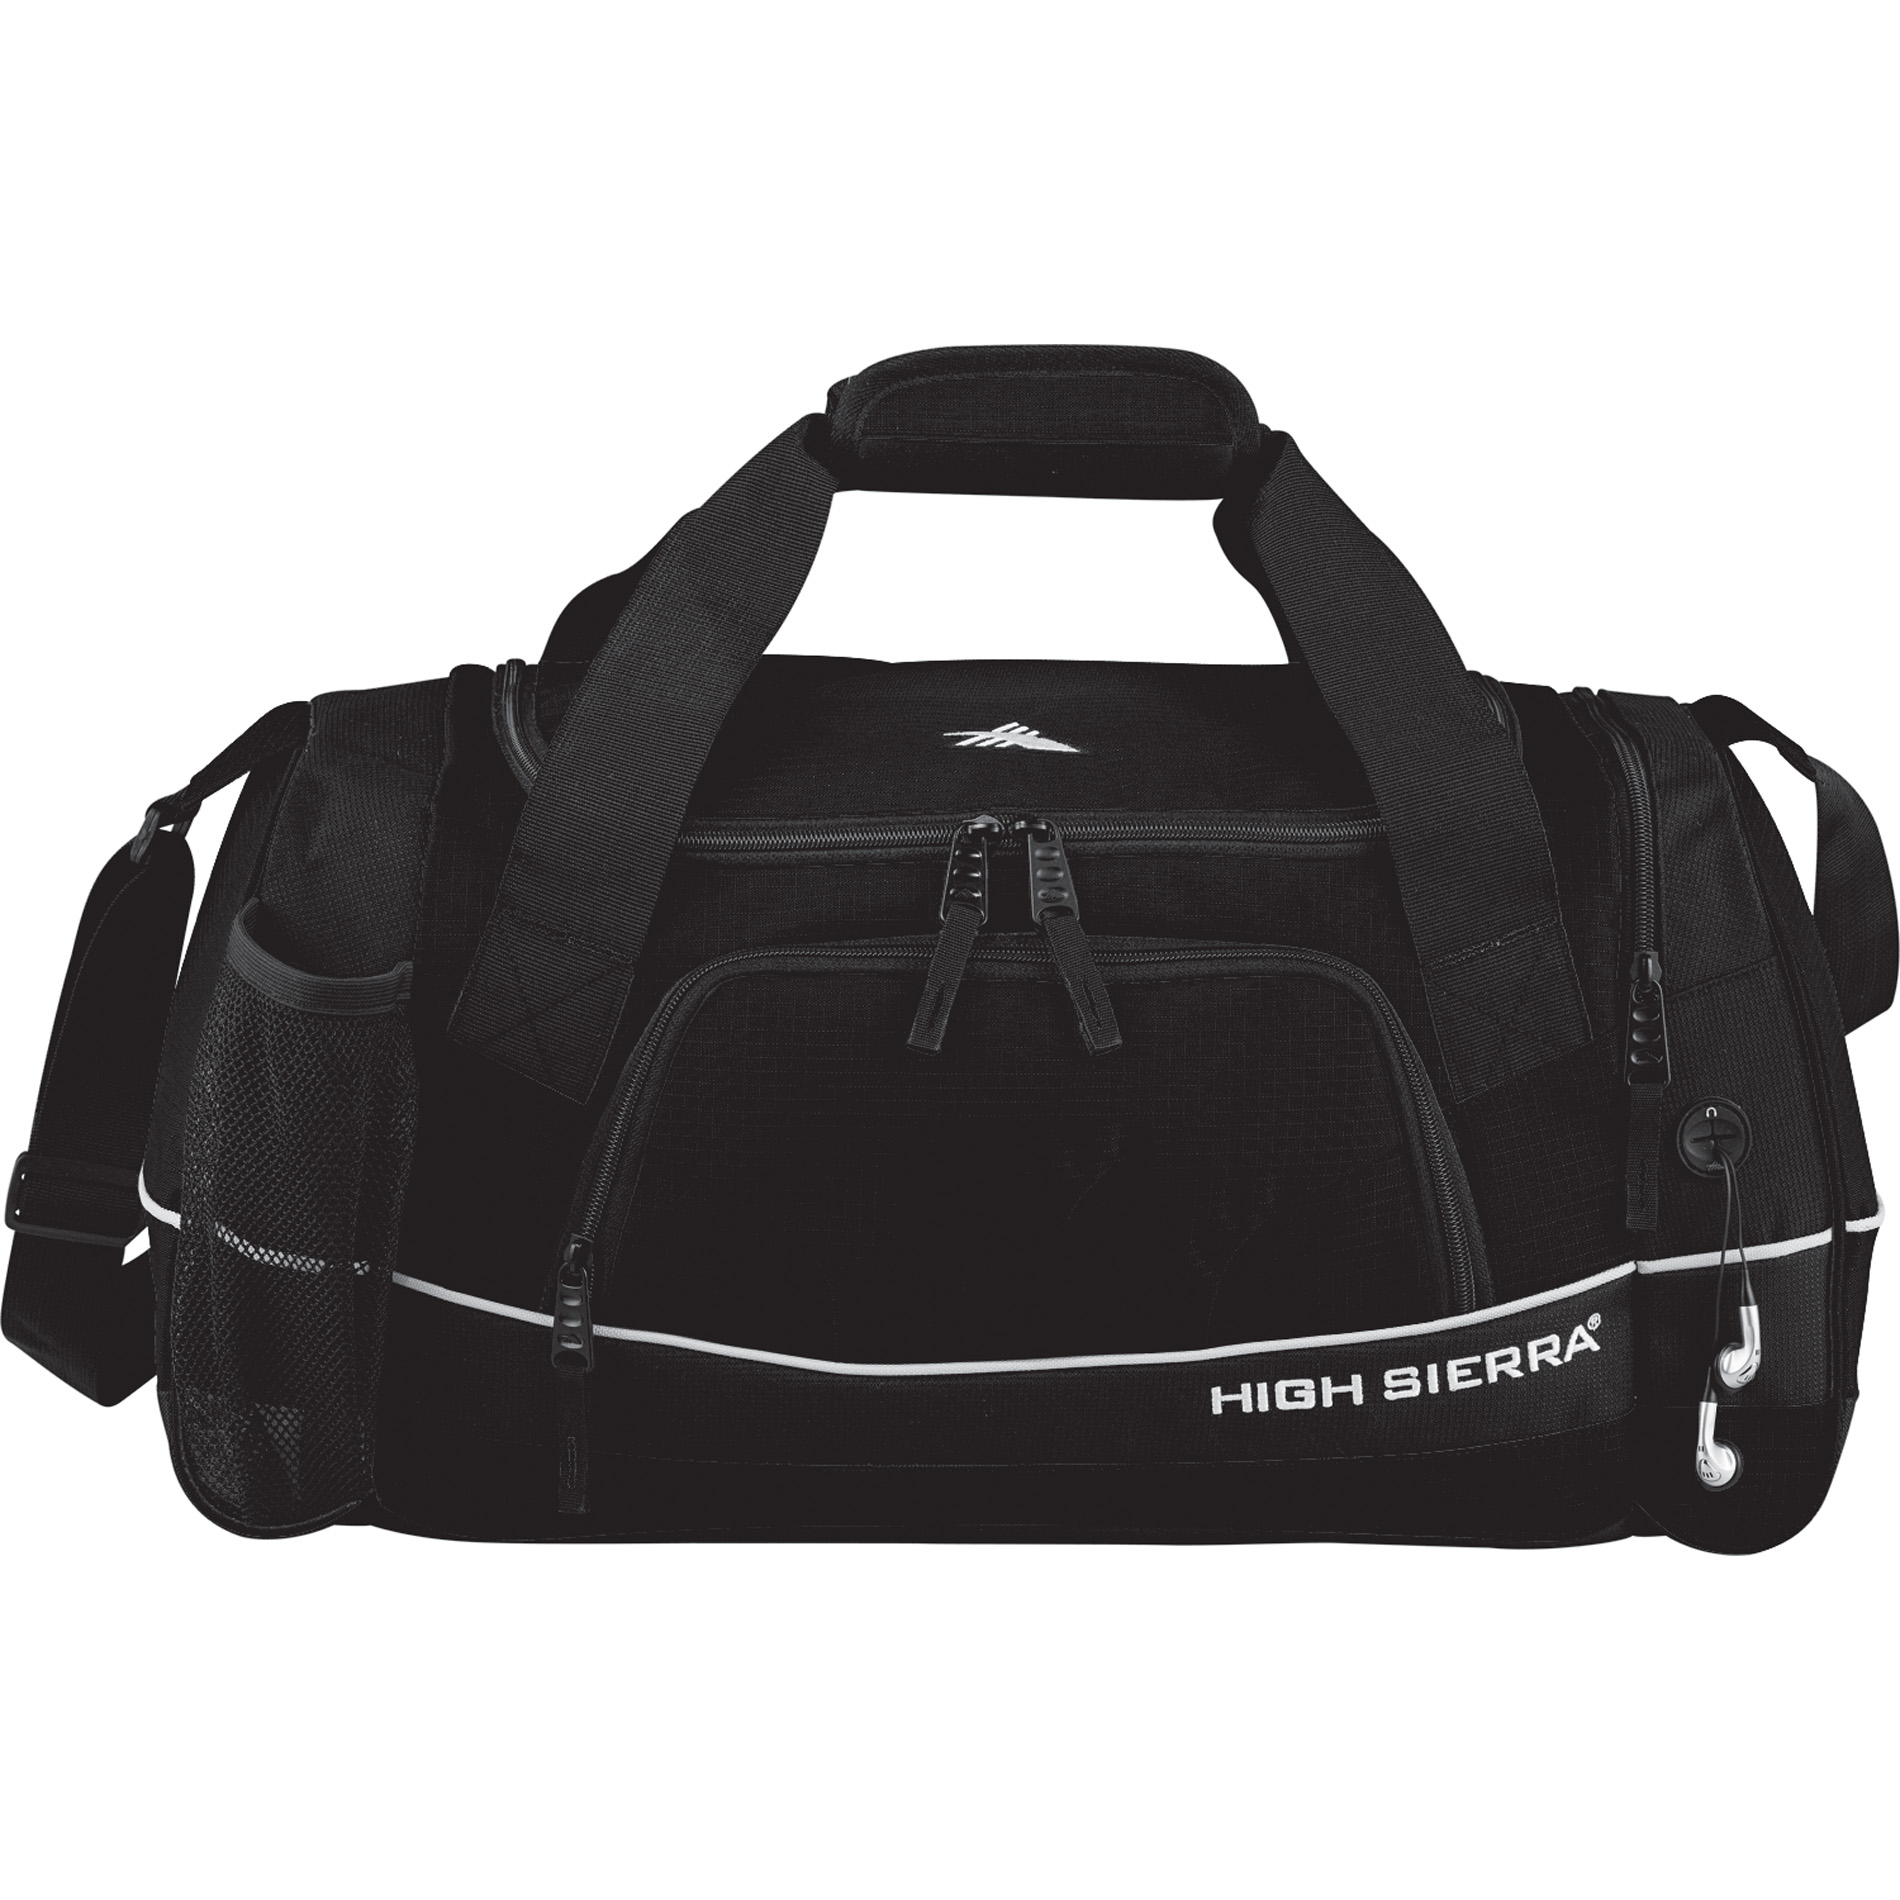 "High Sierra 8050-15 - 22"" Bubba Duffel Bag"